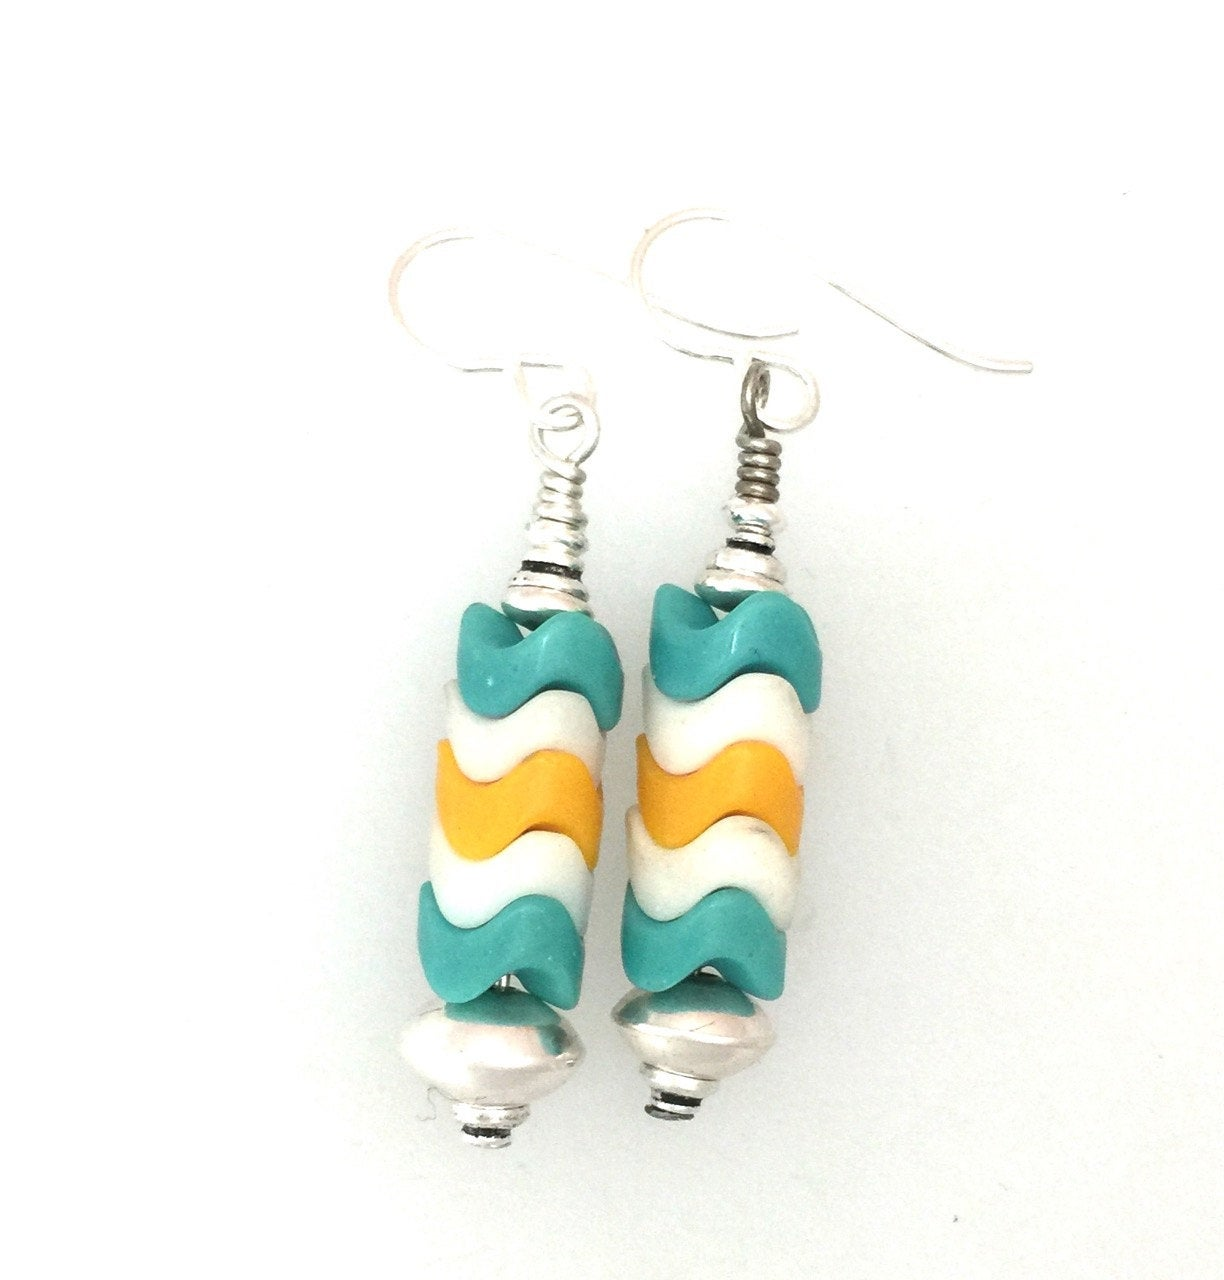 8mm Turquoise White and Yellow Snake Glass Beads | Earrings